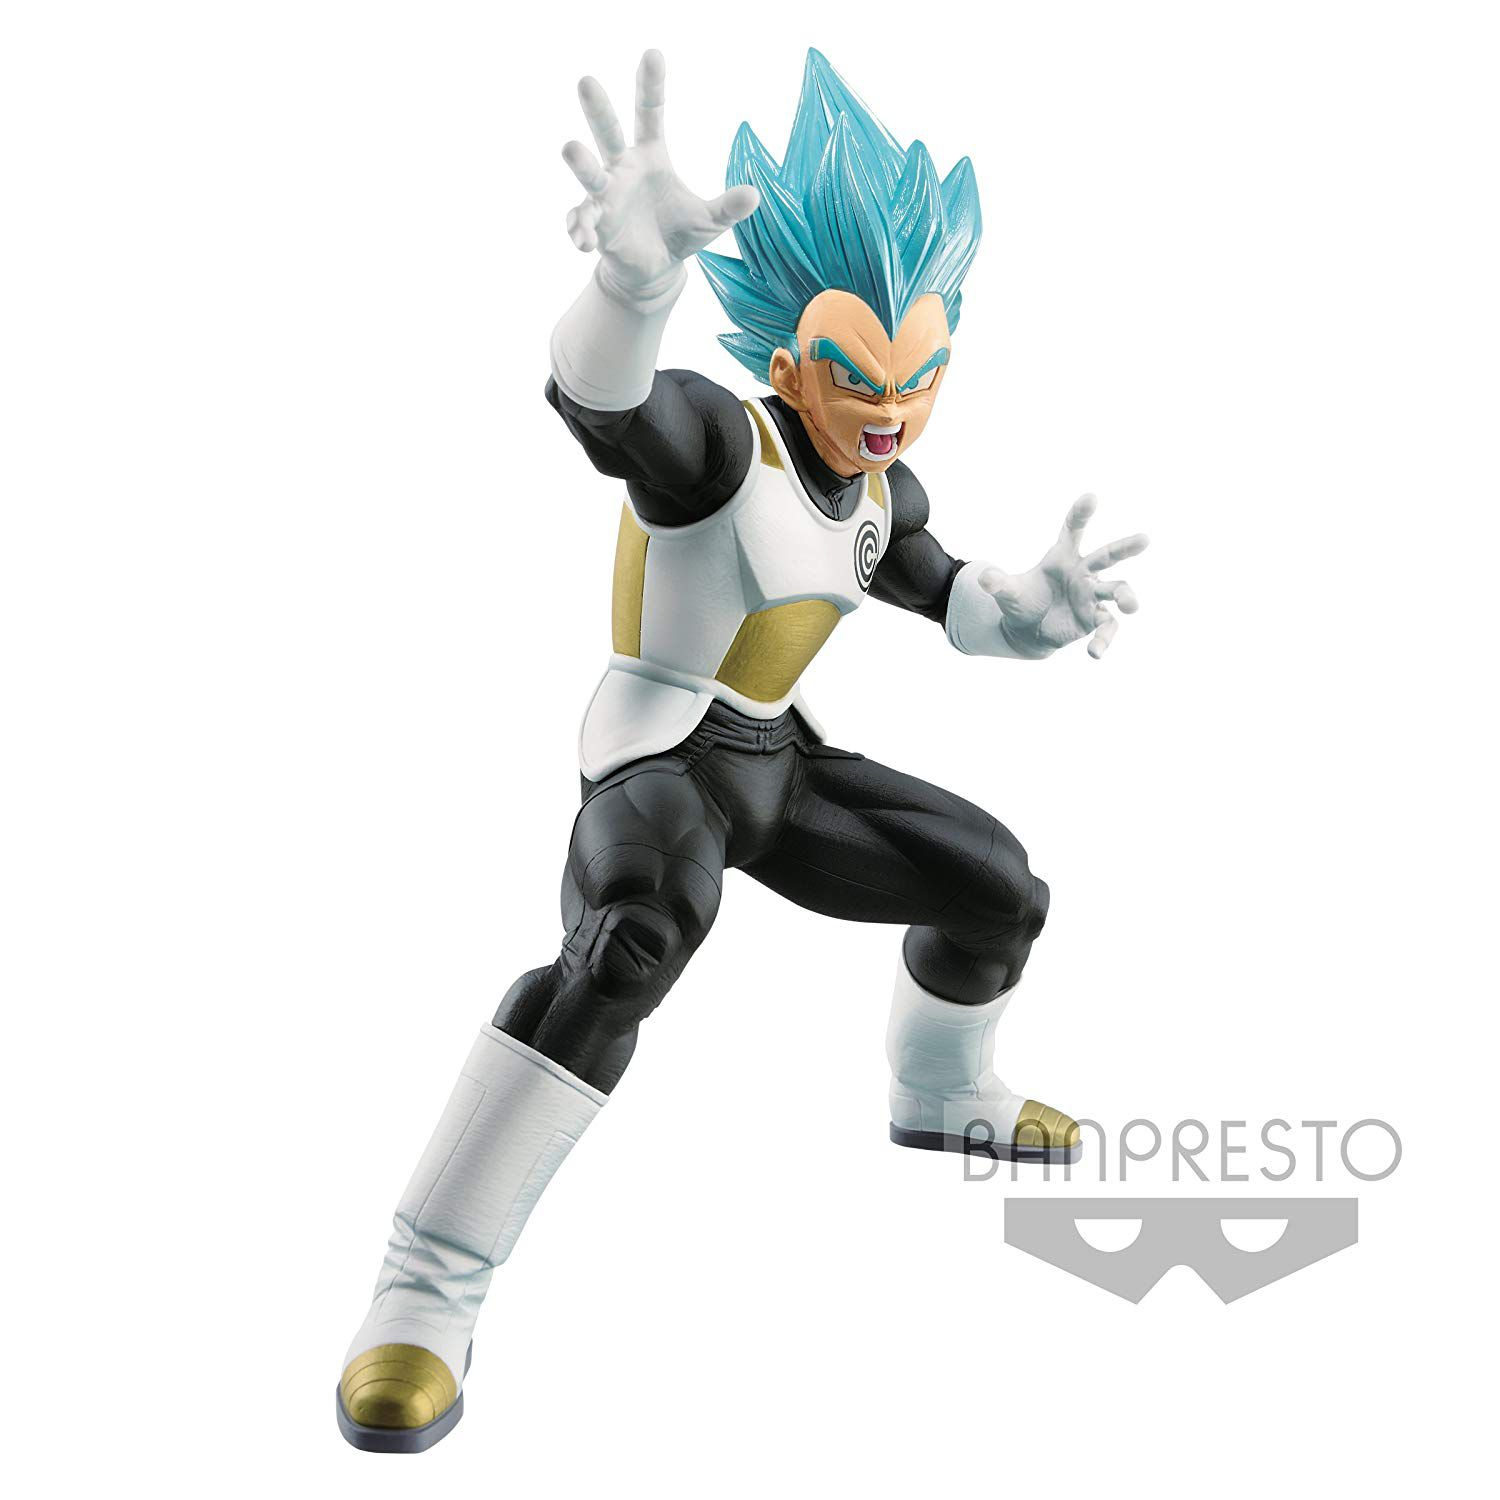 Super Dragon Ball Heroes - Vegeta Blue - Banpresto - Original